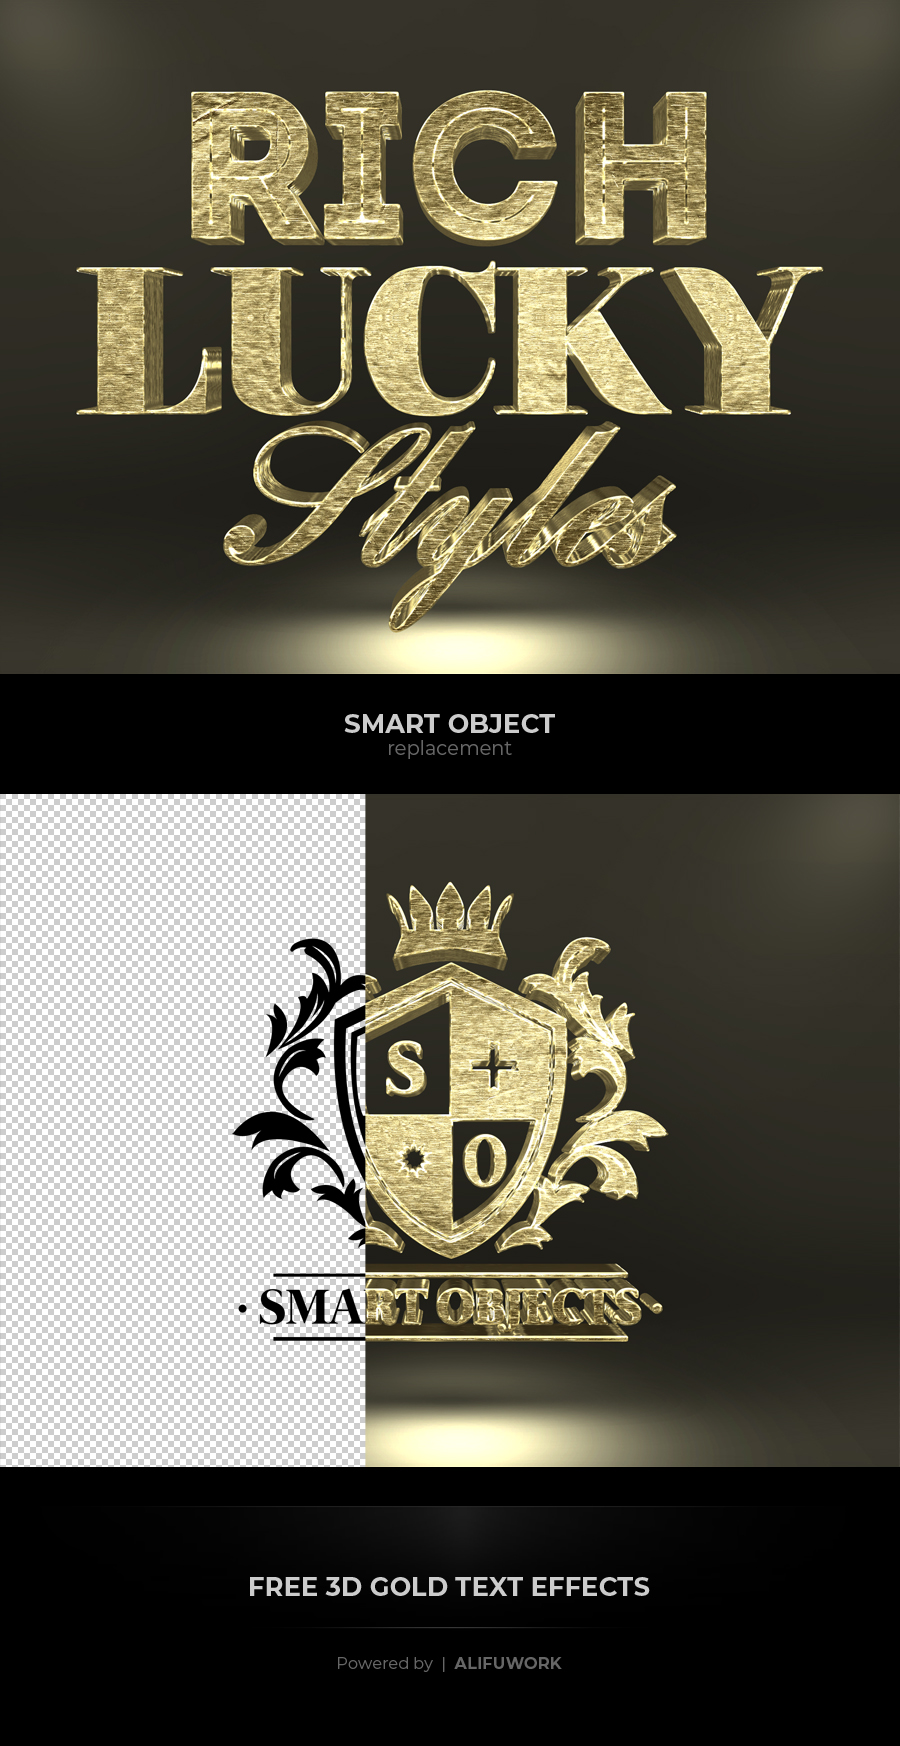 Free 3D Gold Text Effects